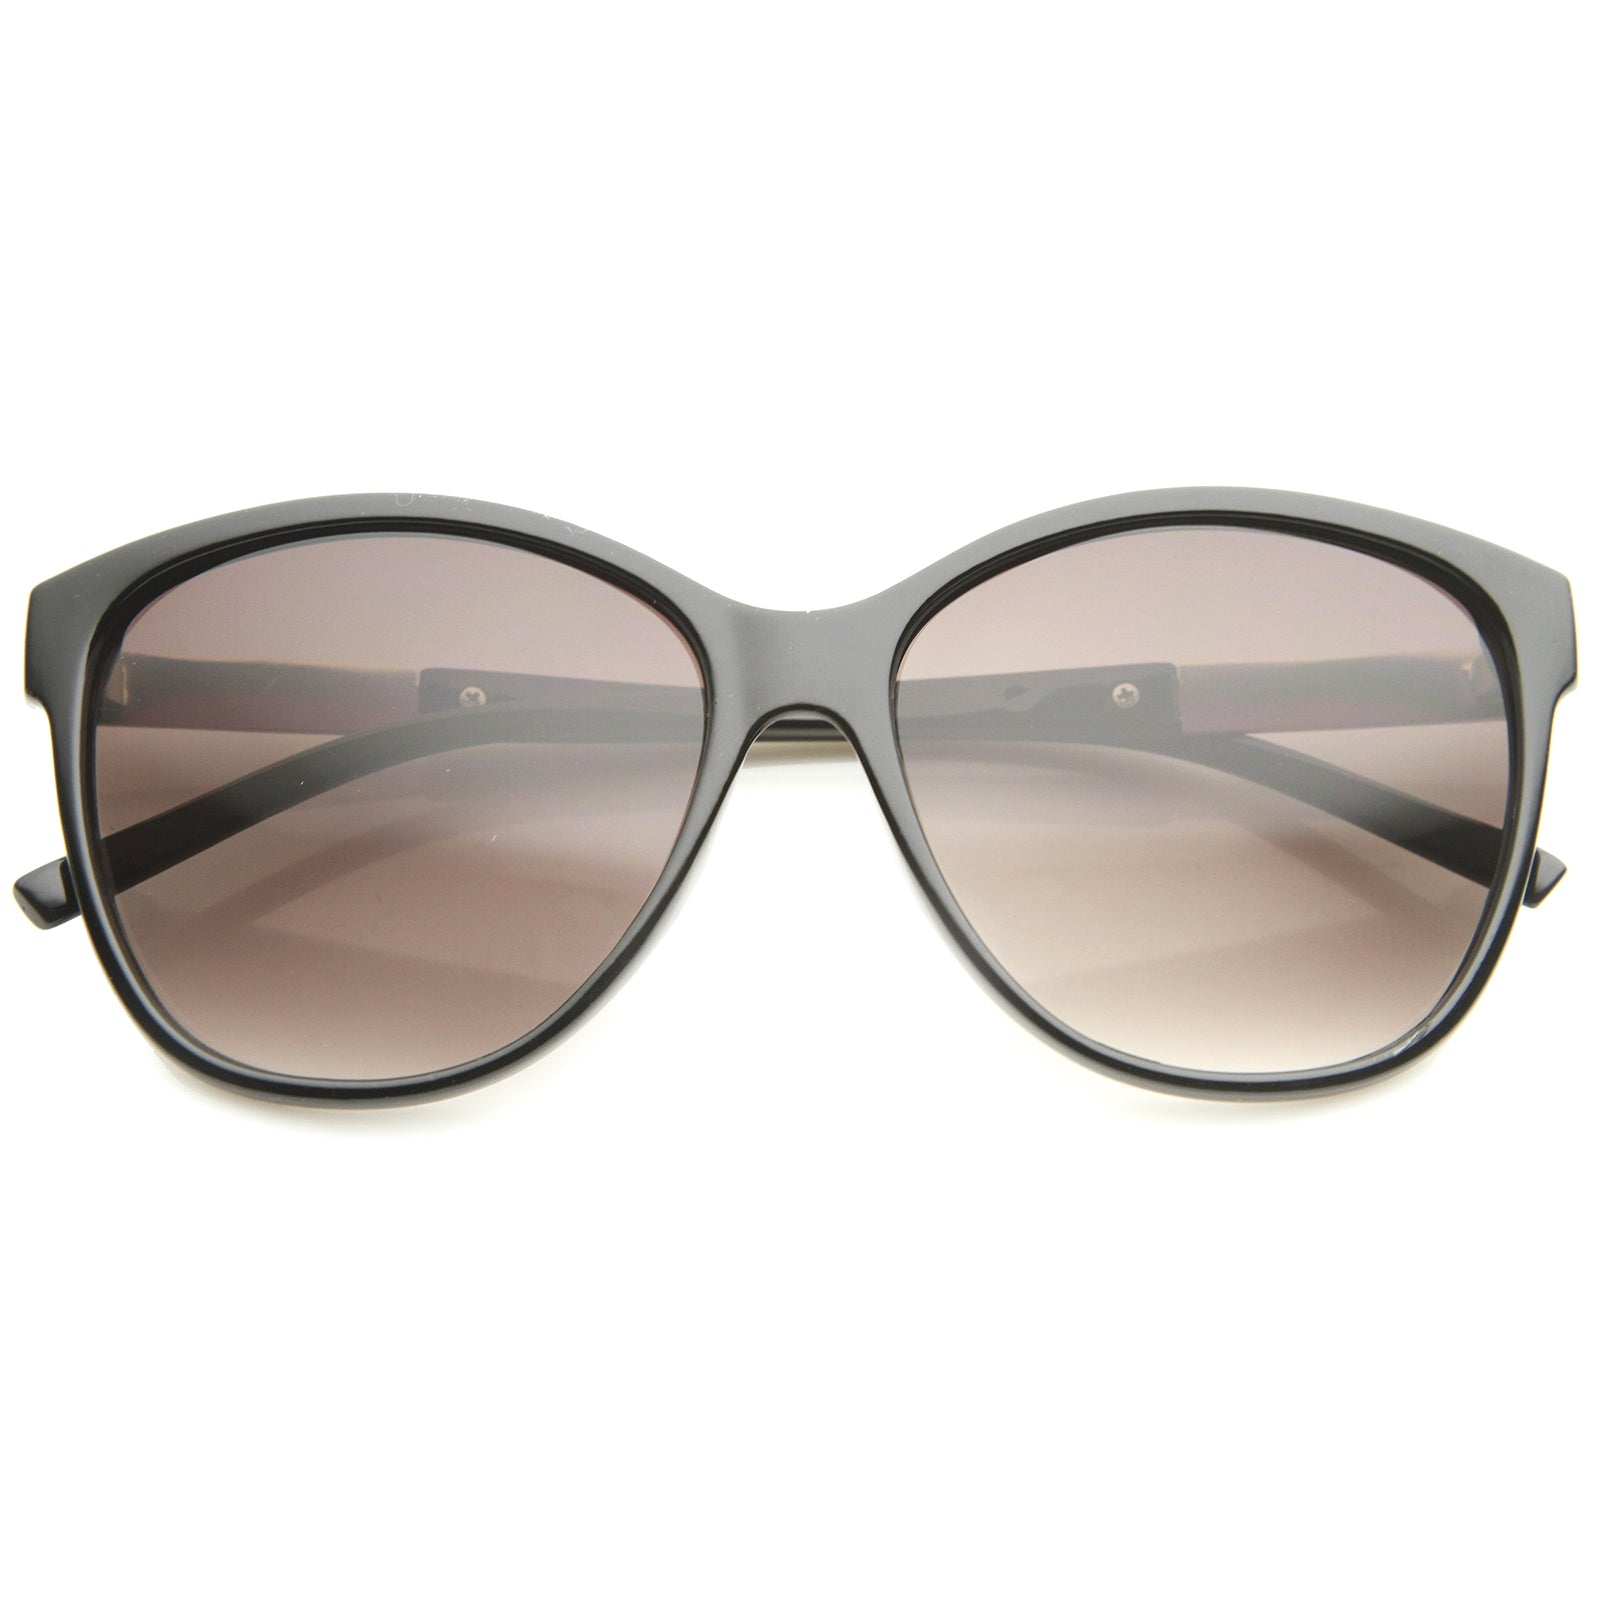 Women's Glam Fashion Metal Temple Oversize Cat Eye Sunglasses 59mm - sunglass.la - 5